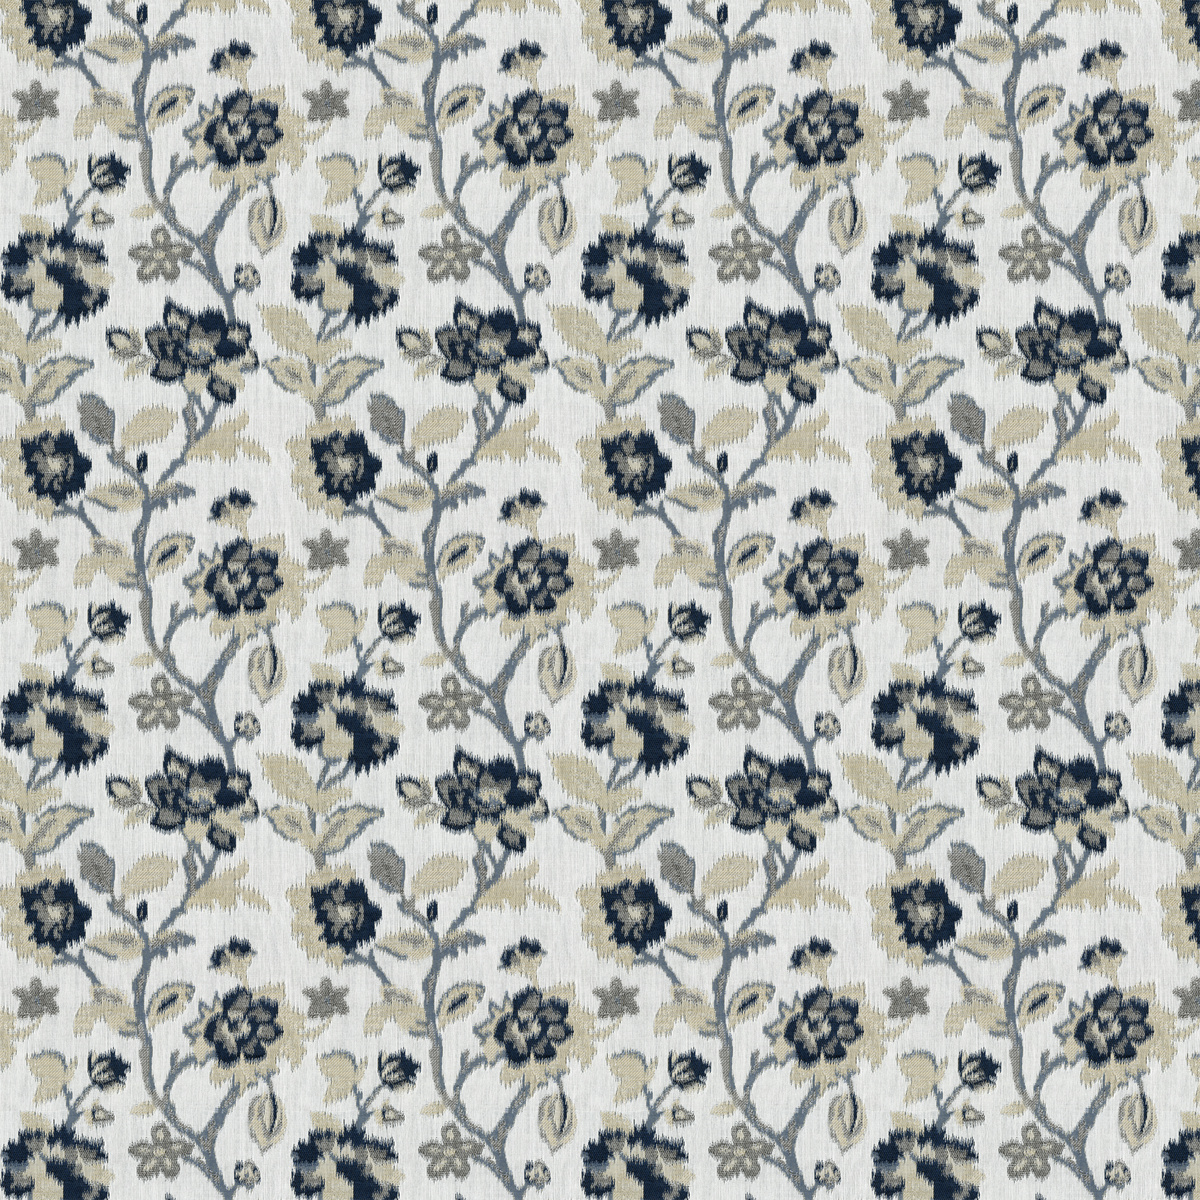 Sunbrella Outdoor Fabric 54\u0022-Kauai Navy